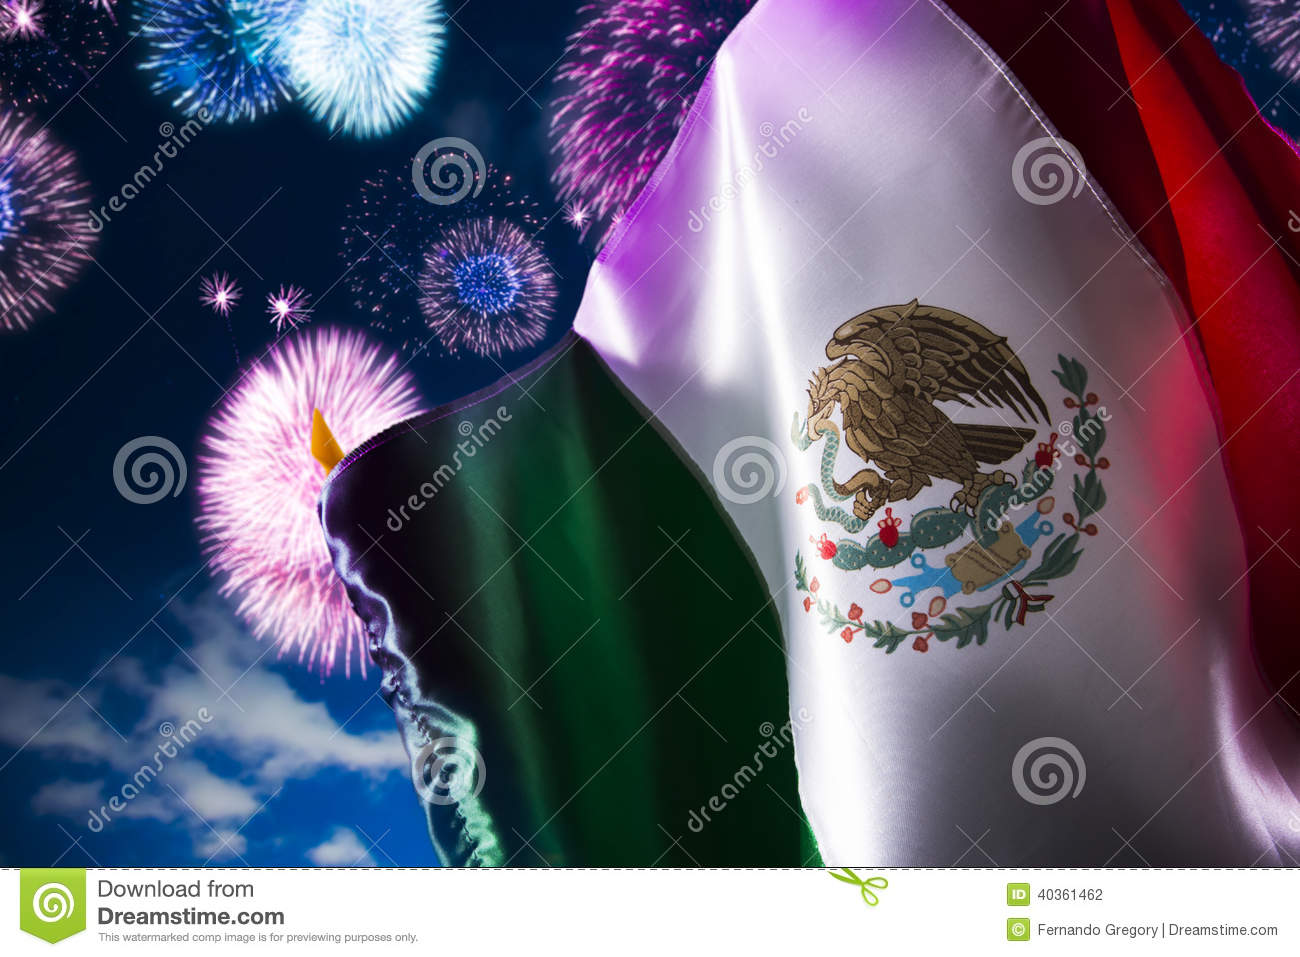 Mexican flag with fireworks, independence day, cinco de mayo celebration